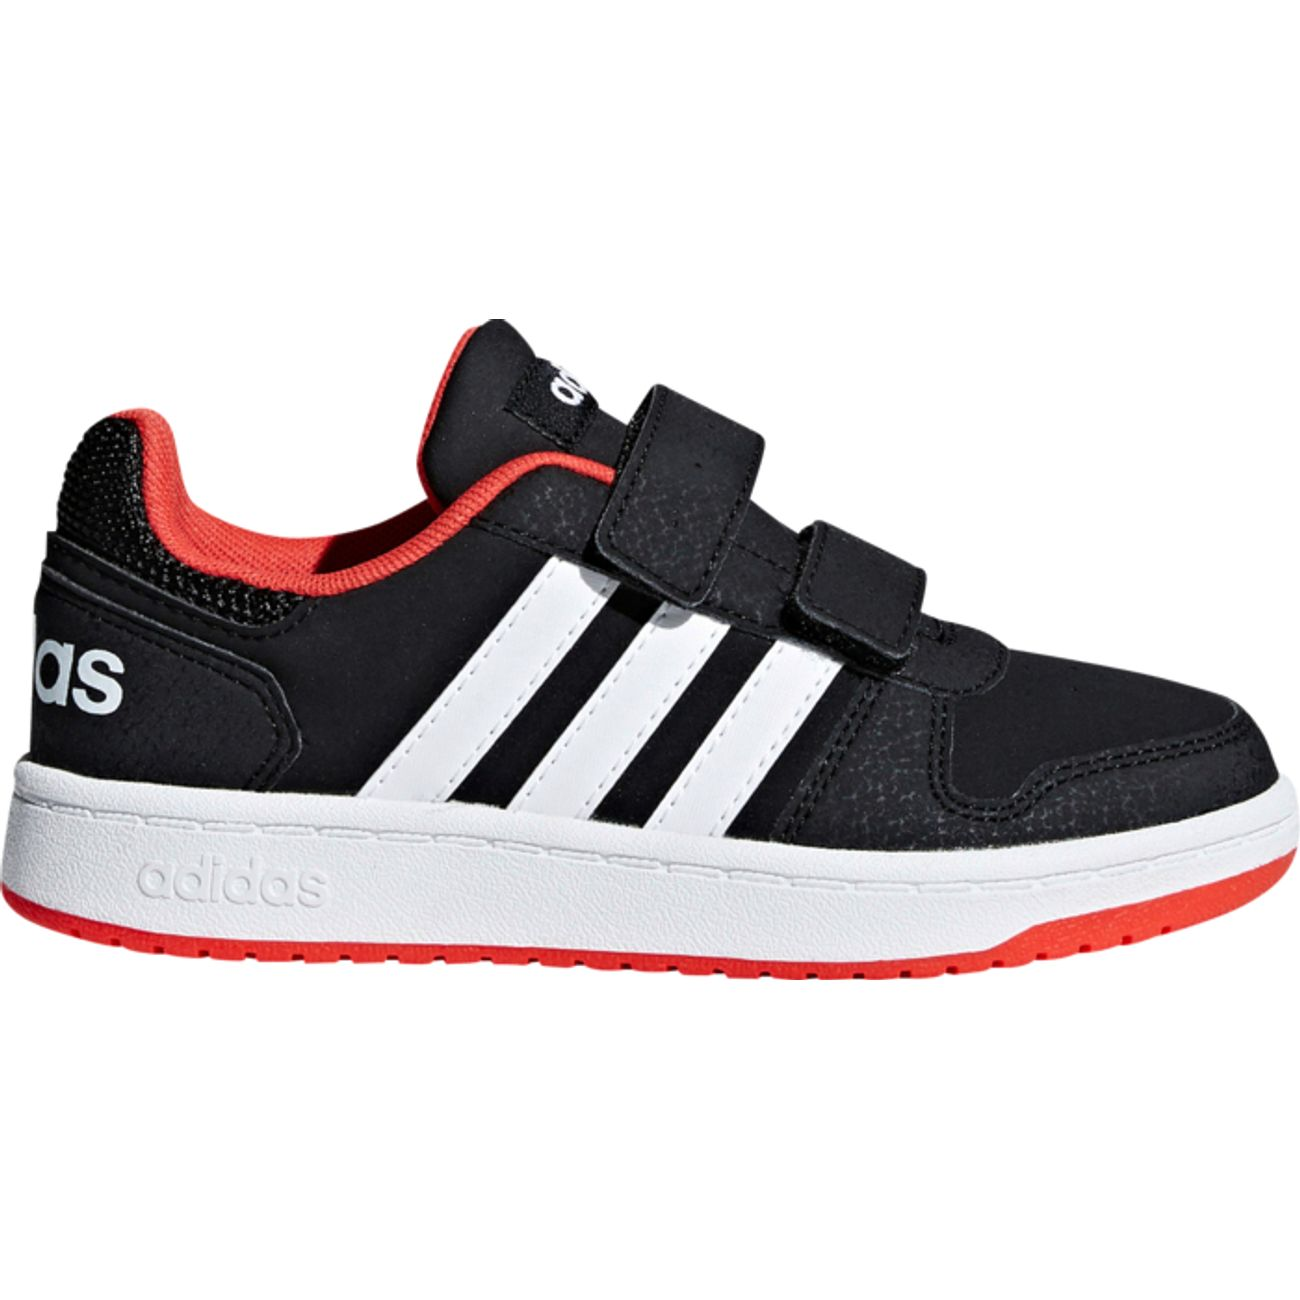 adidas hoops 2.0 cmf c chaussures de fitness mixte enfant